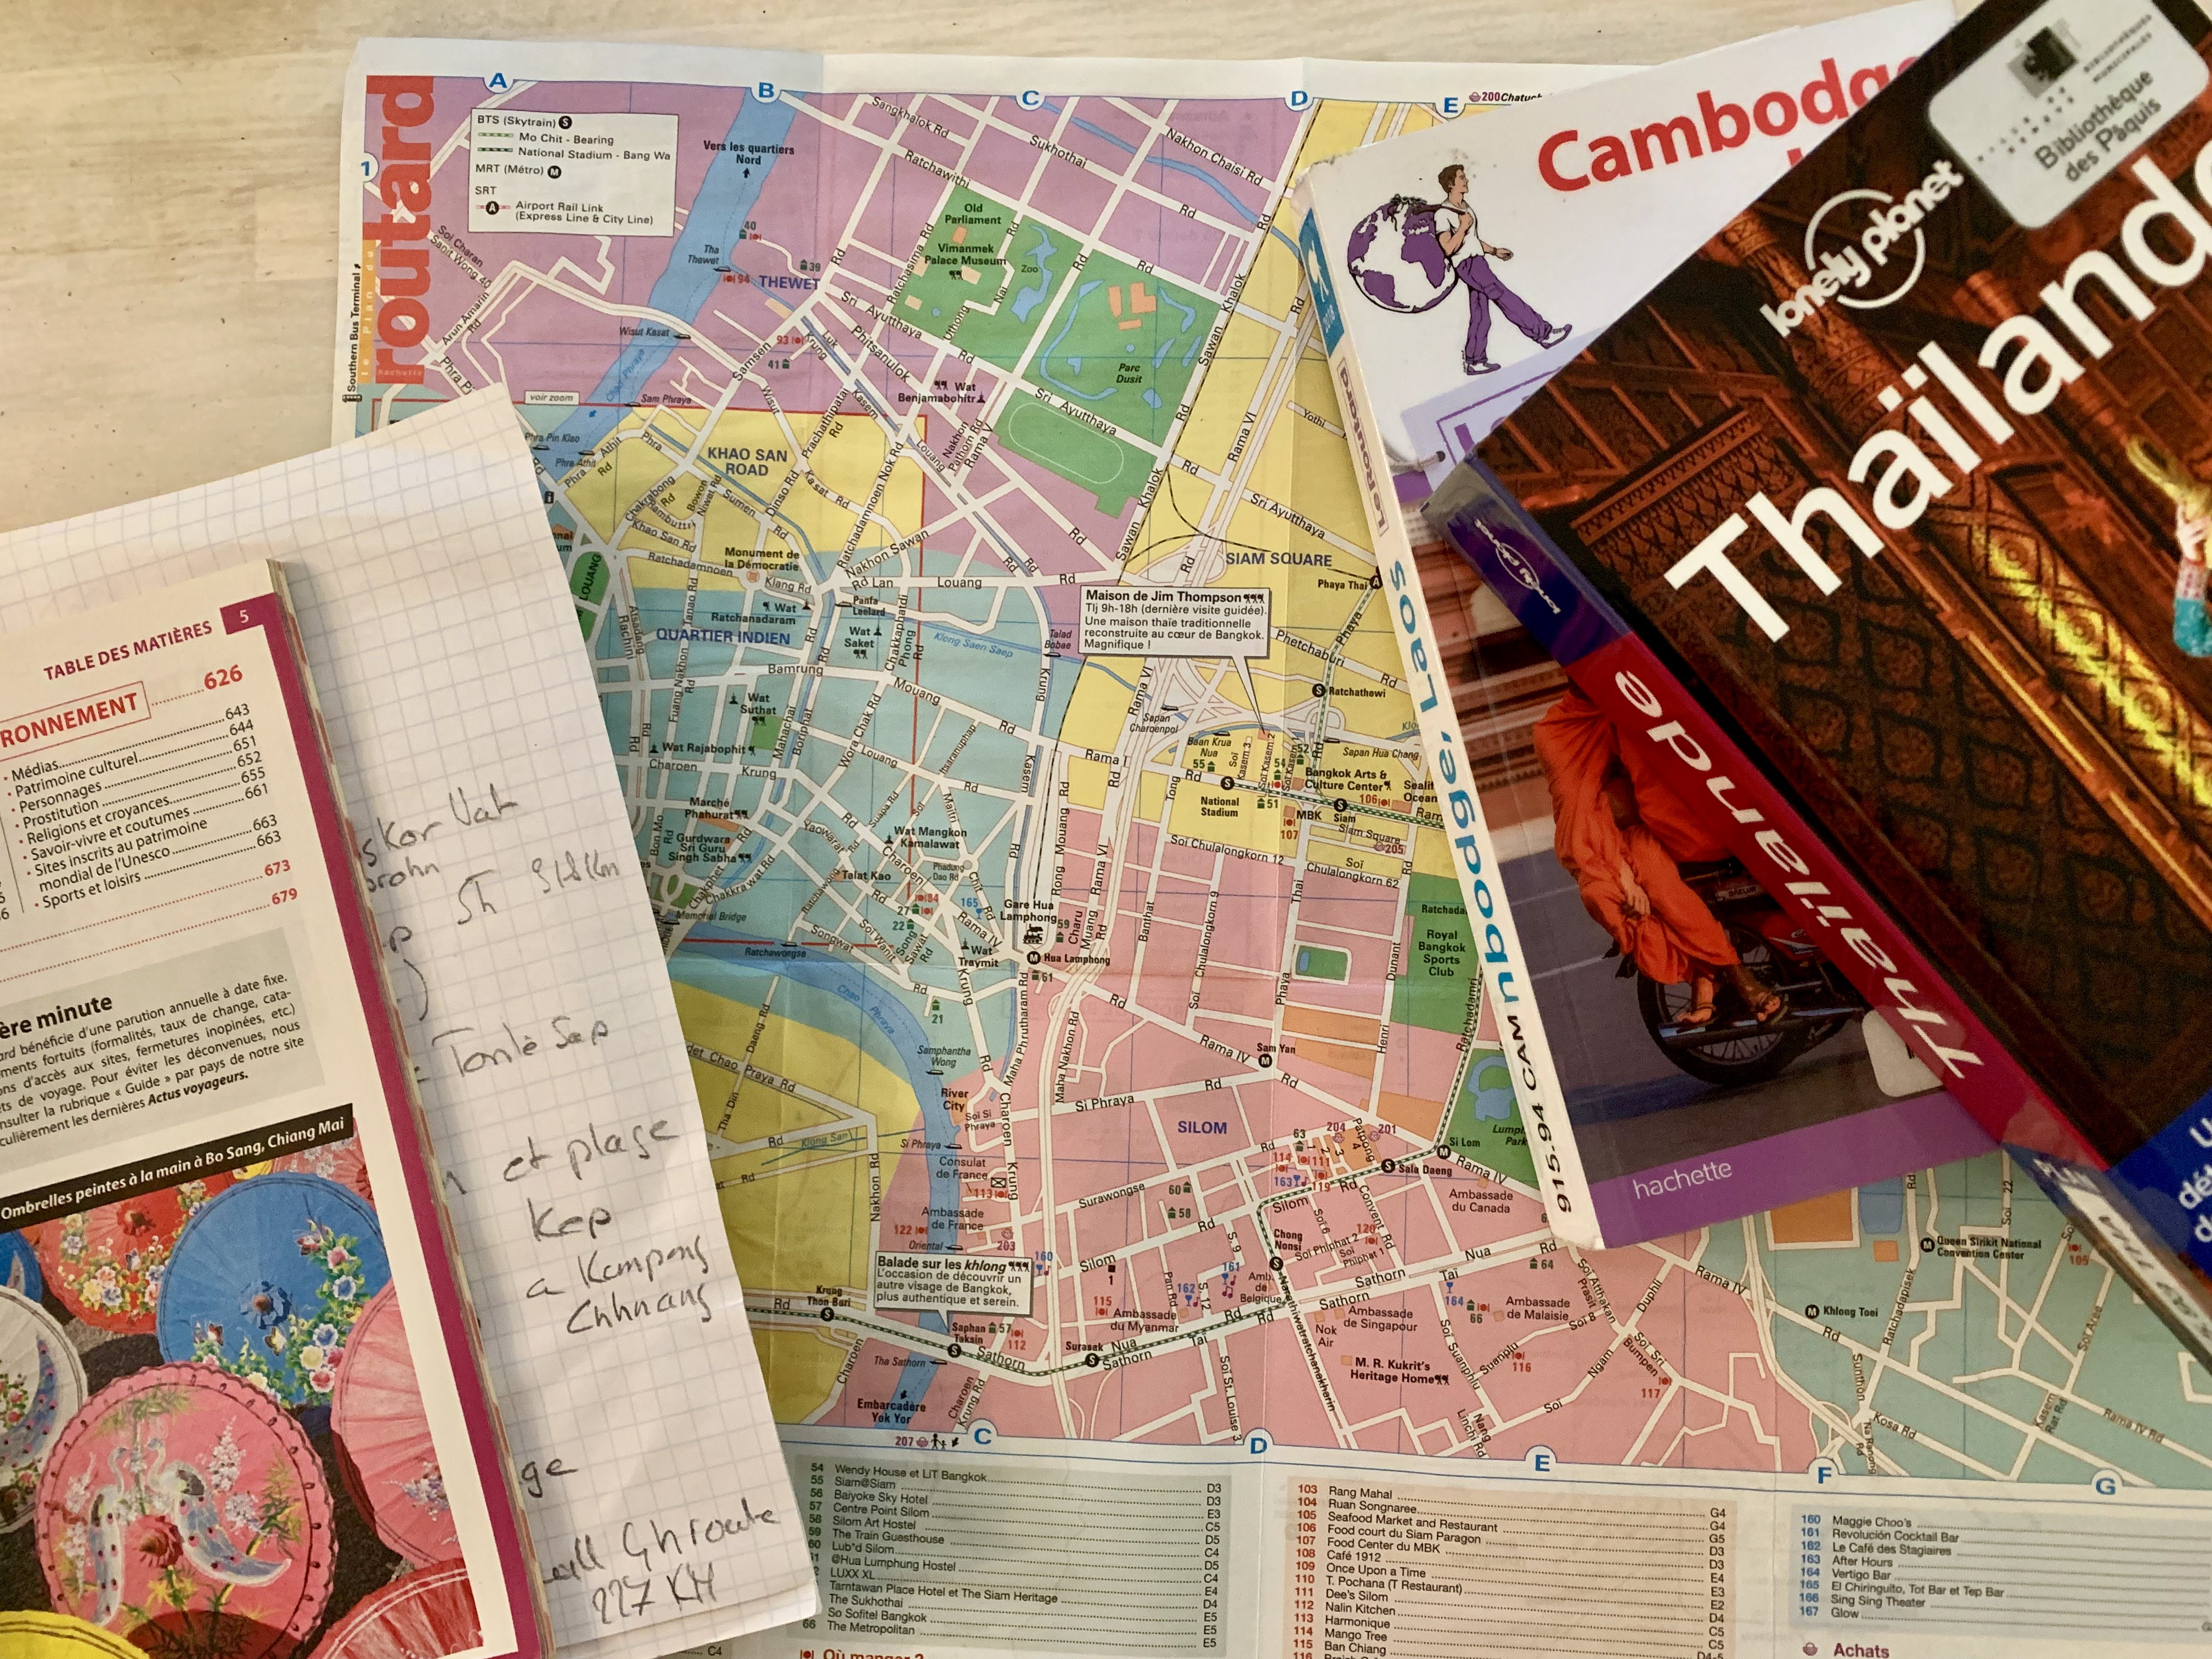 Maps and travel guide books